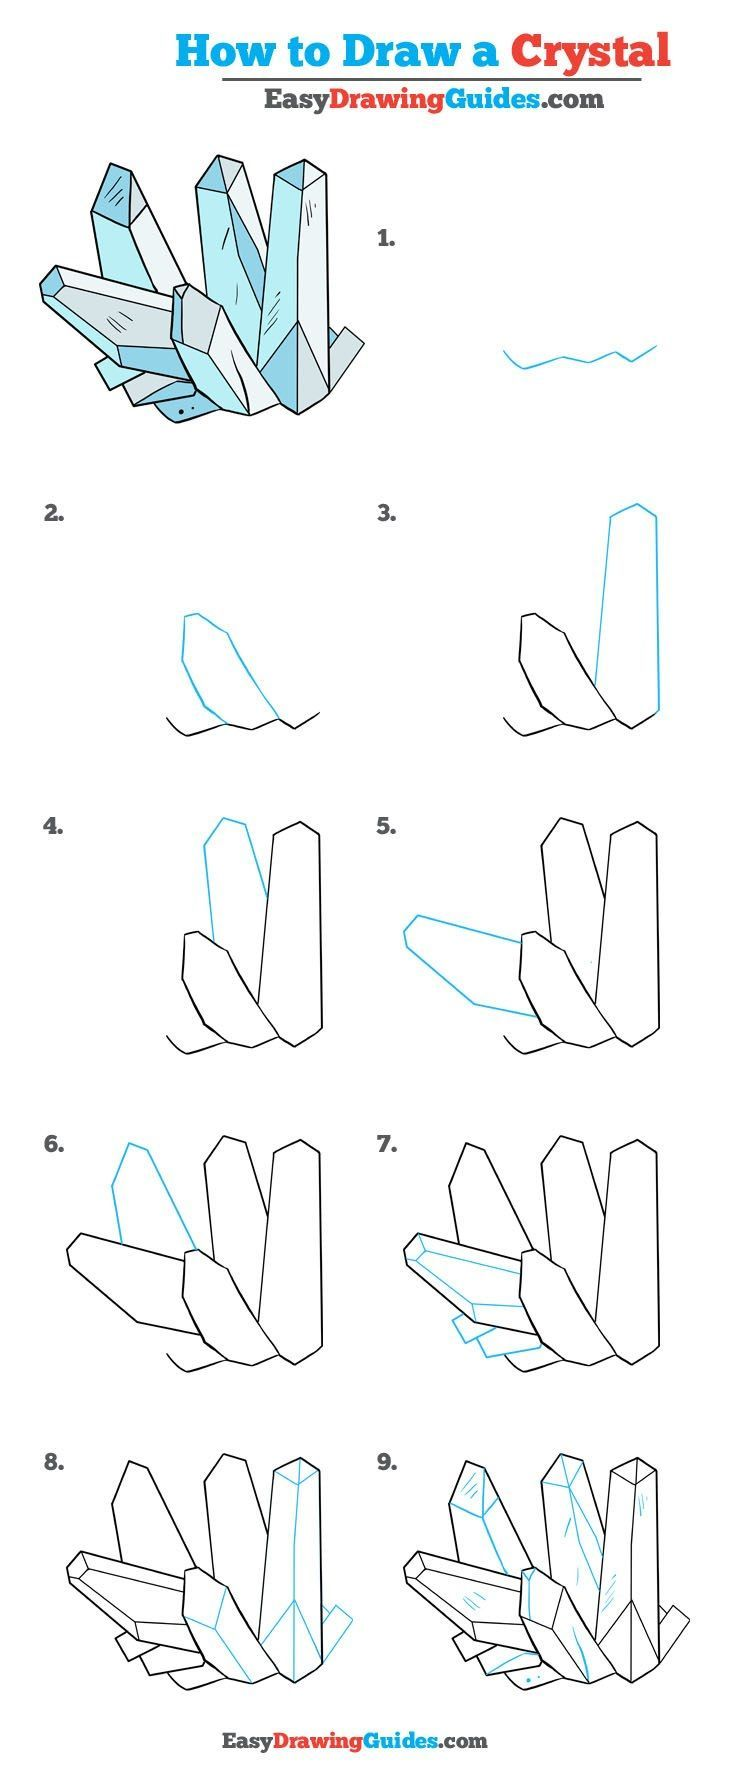 Learn How to Draw Crystals: Easy Step-by-Step Drawing Tutorial for Kids and Beginners. #Crystals #drawingtutorial #easydrawing See the full tutorial at https://easydrawingguides.com/how-to-draw-crystals-really-easy-drawing-tutorial/.